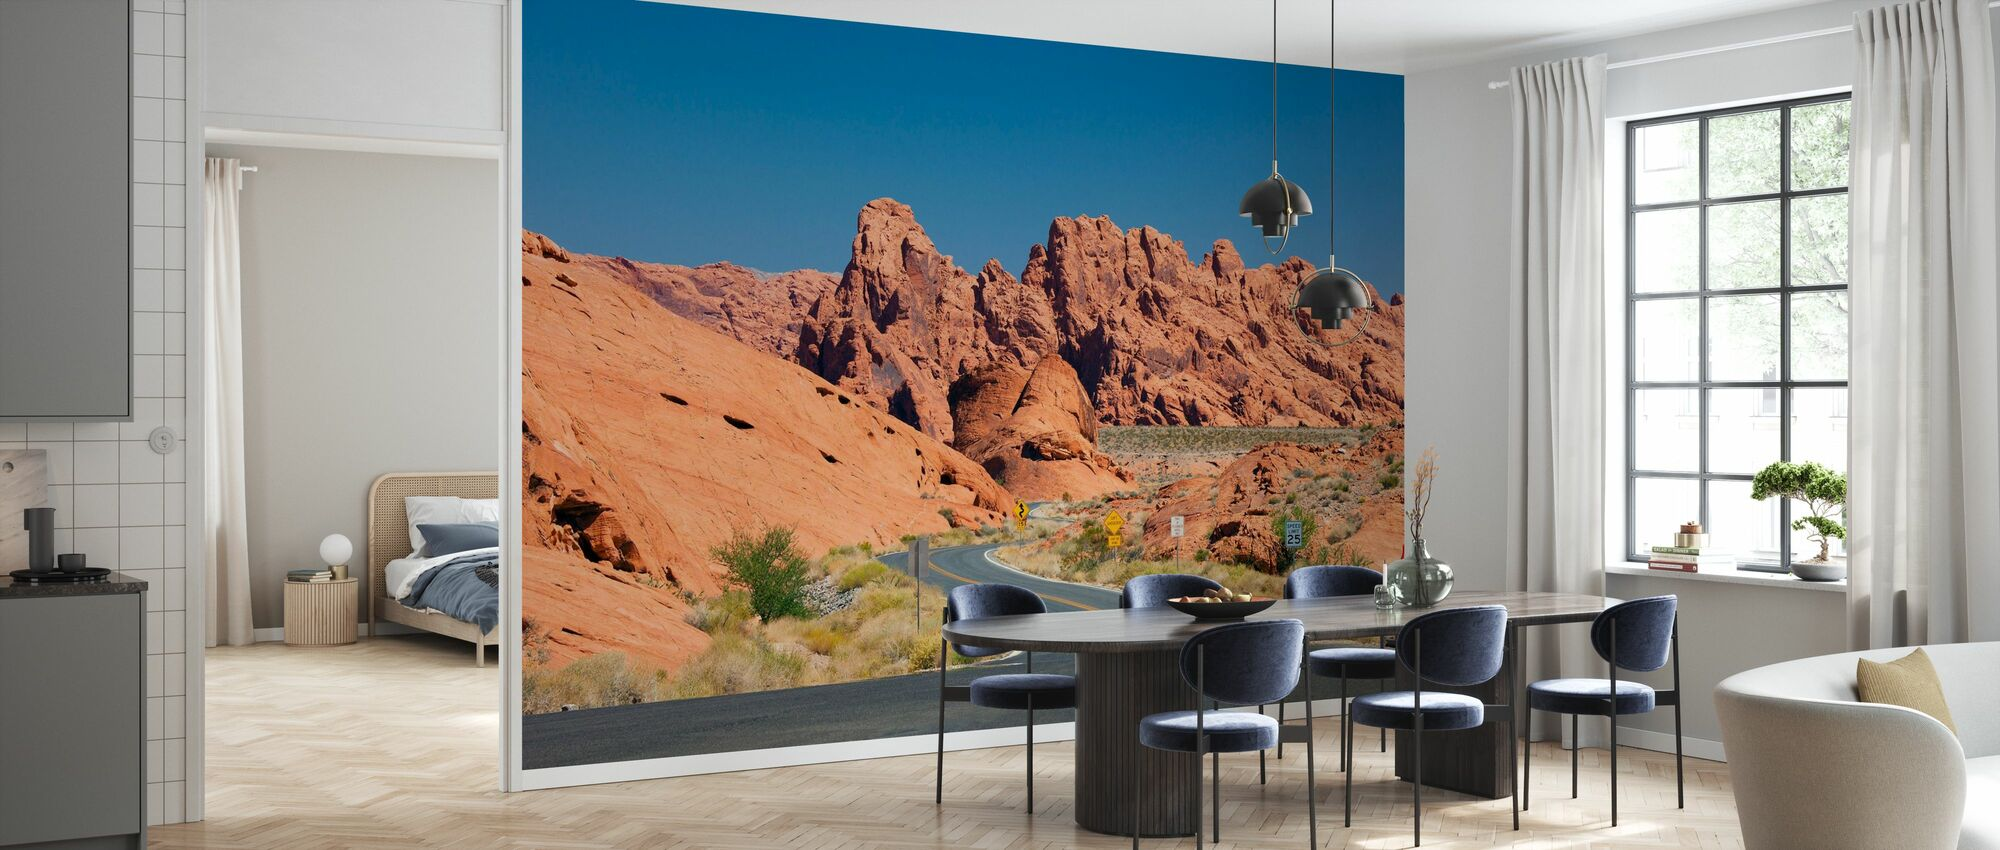 Valley of Fire in Nevada, USA - Wallpaper - Kitchen